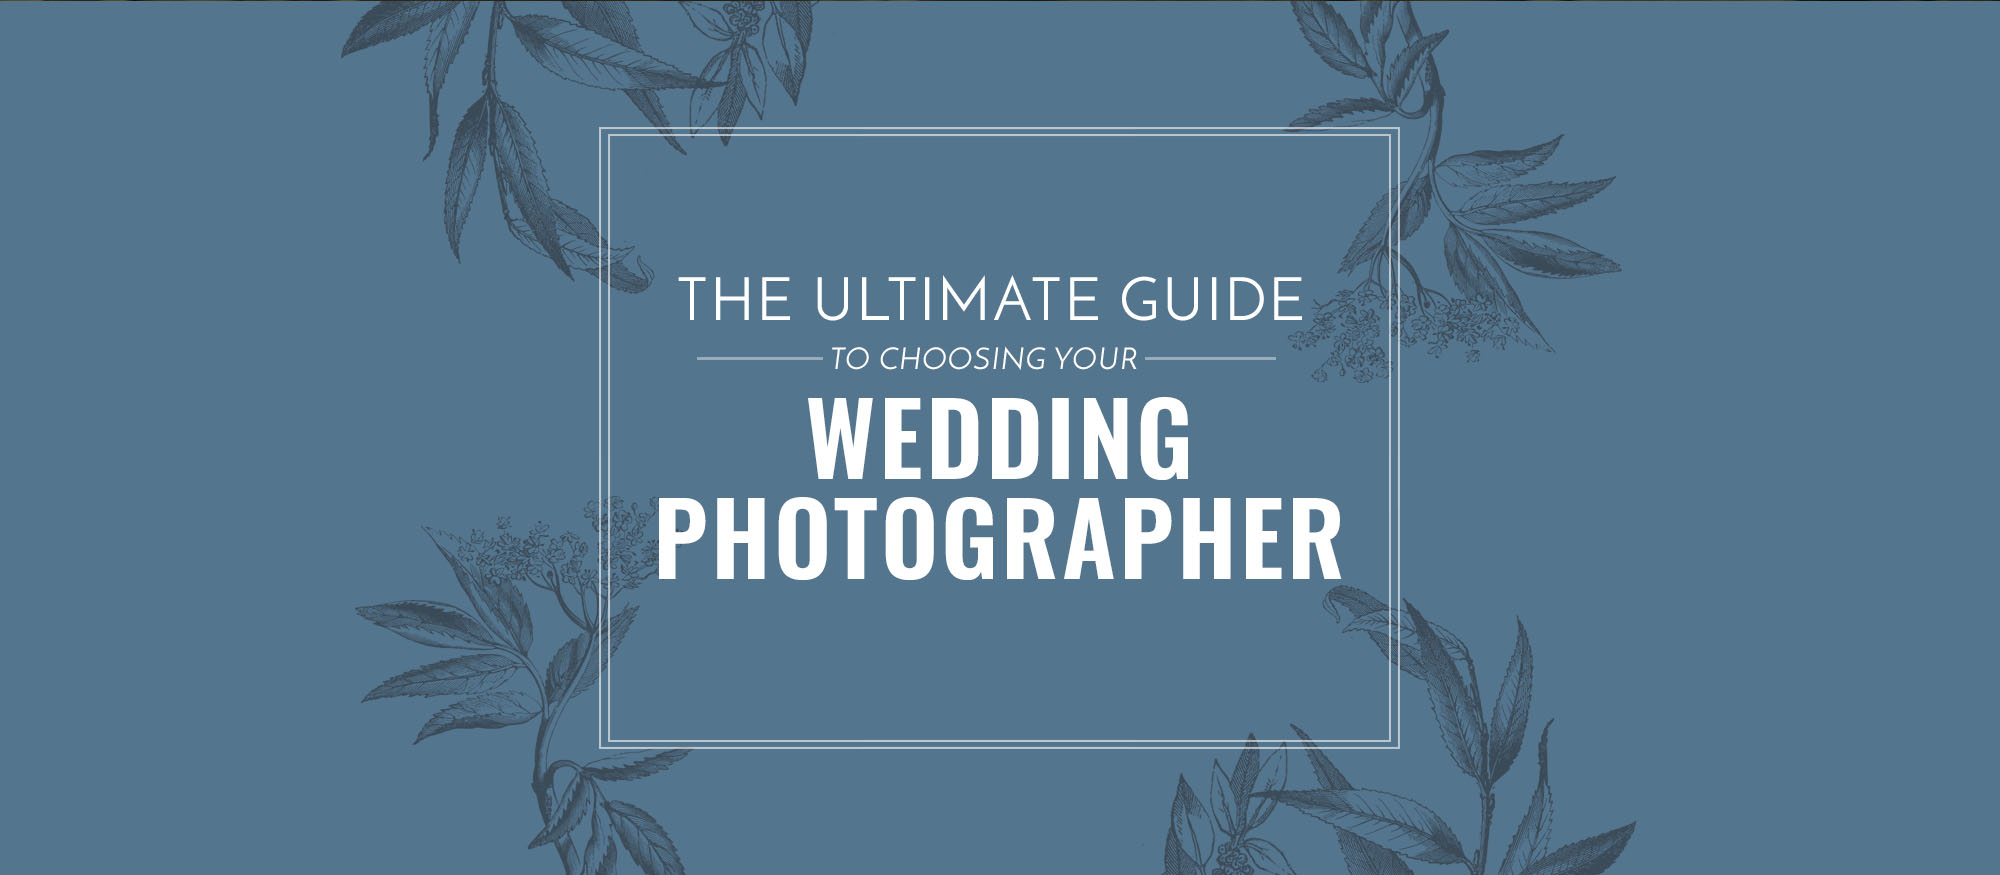 Ultimate guide to choosing your wedding photographer